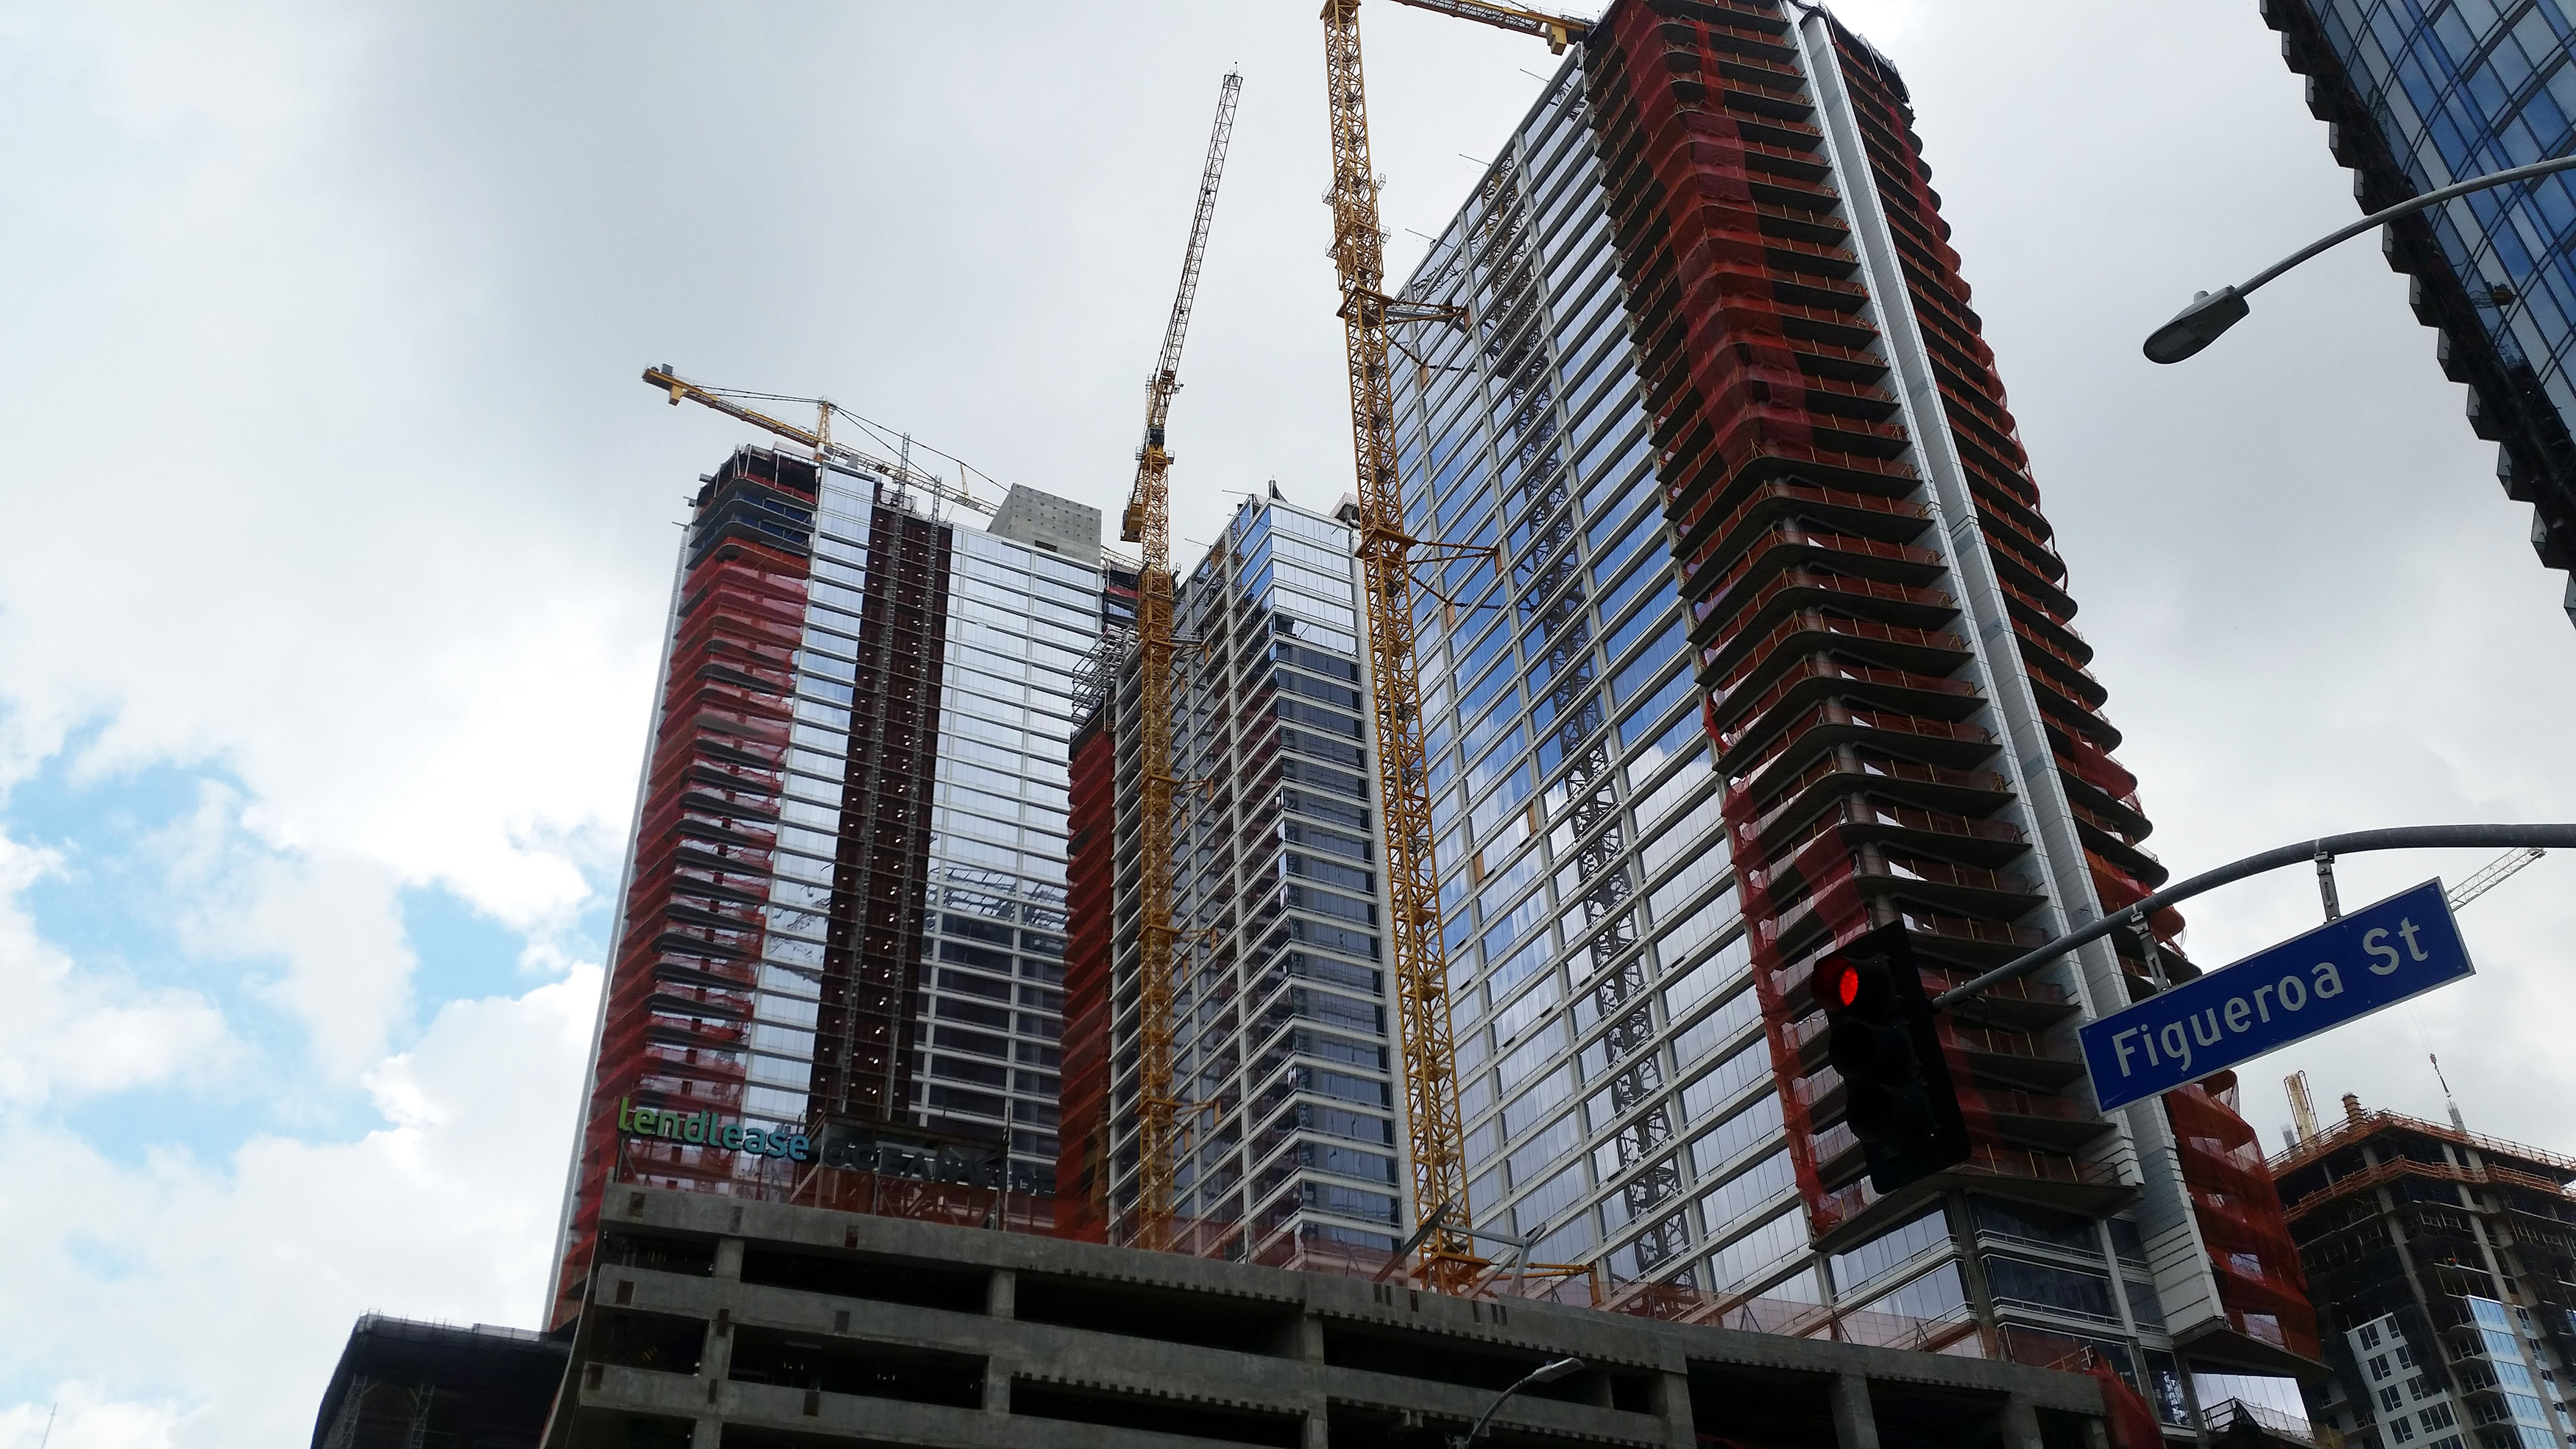 Construction restarting at Oceanwide Plaza as debt soars to $98.6M